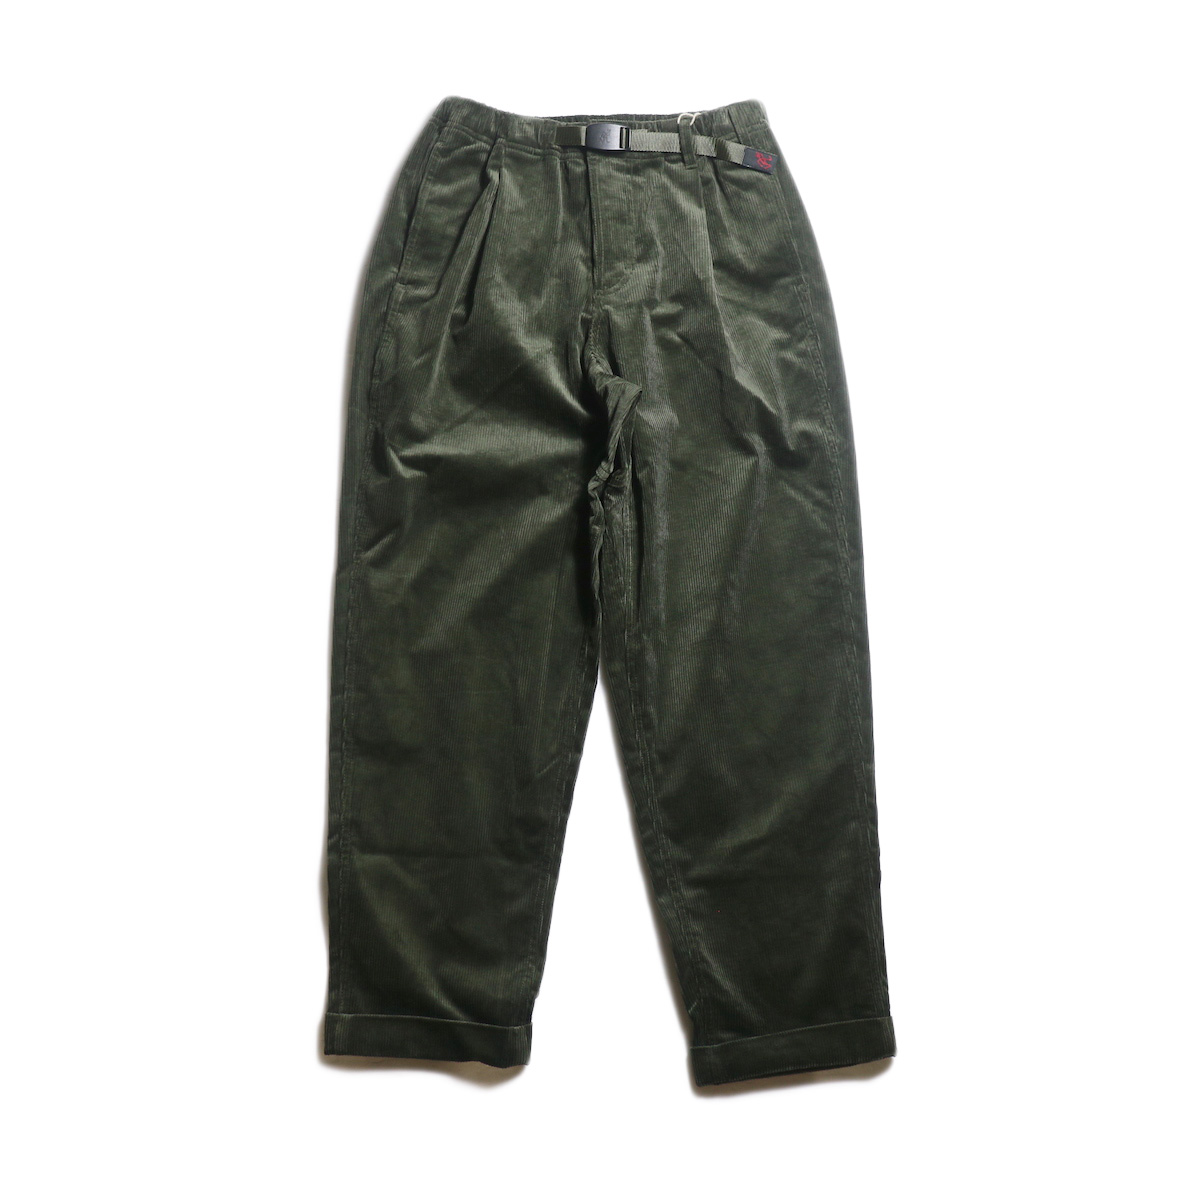 GRAMICCI / CORDUROY TUCK TAPERED PANTS (Olive)